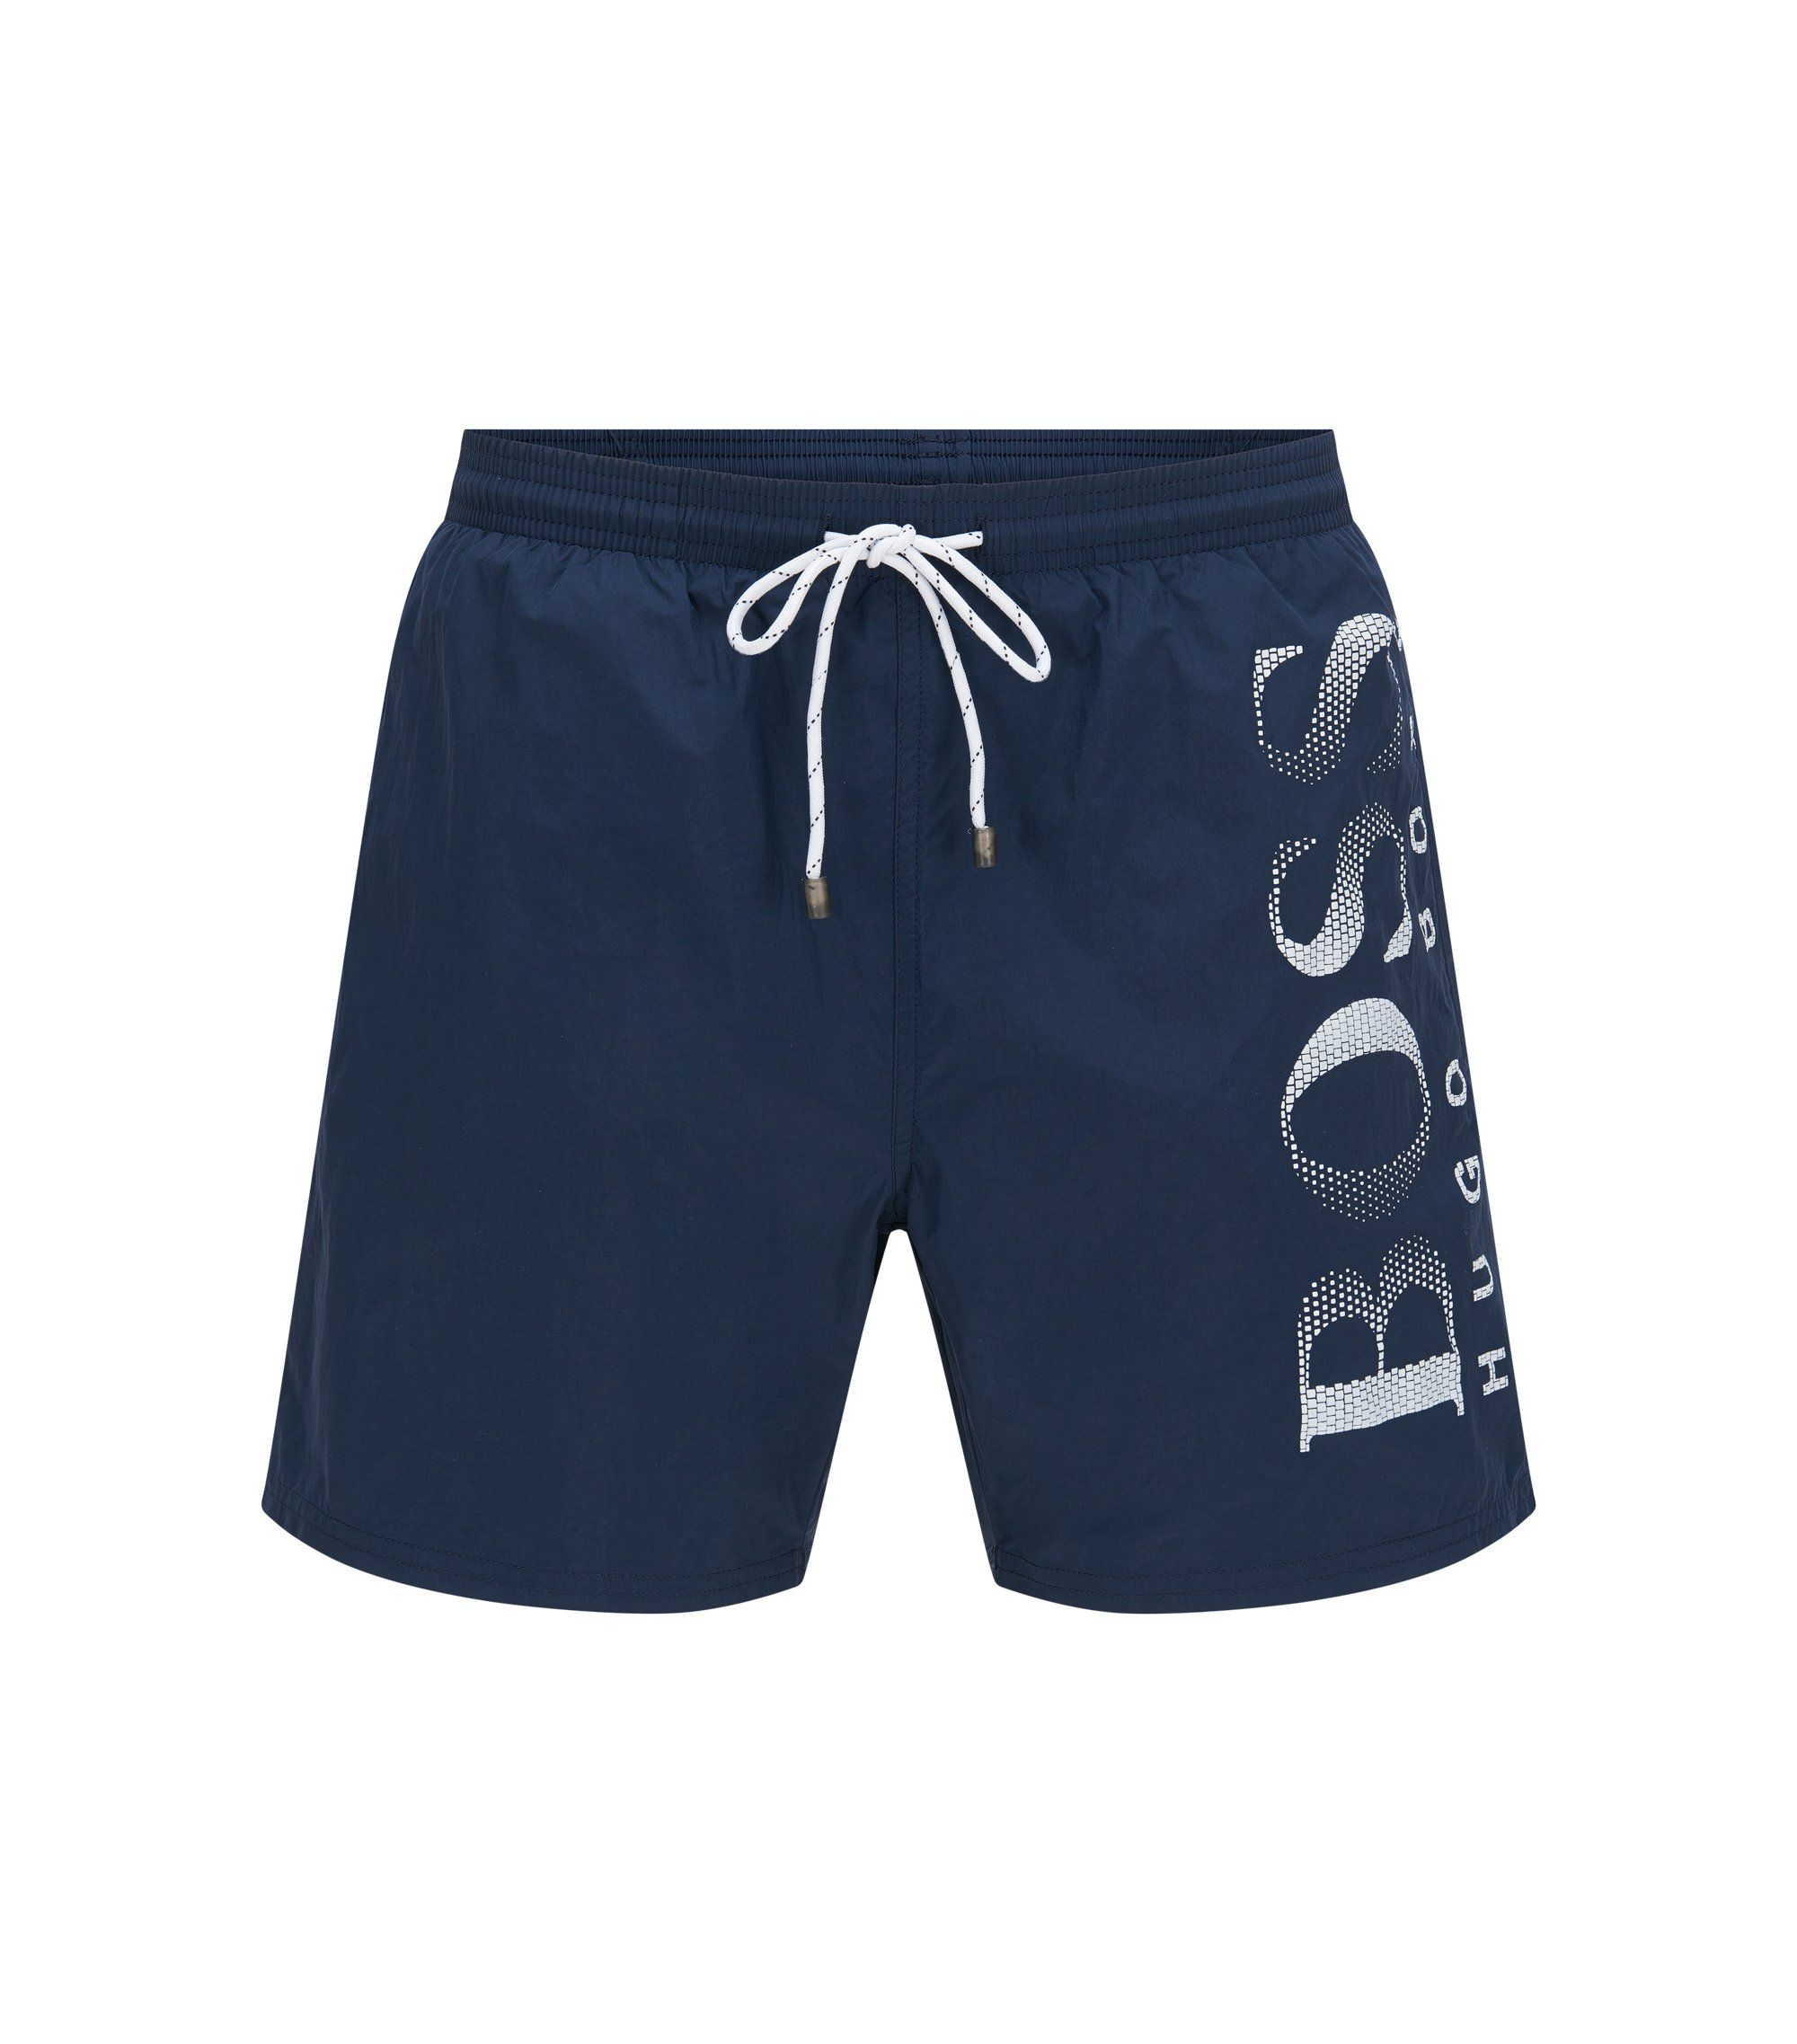 Drawstring swim shorts with logo print, Dark Blue